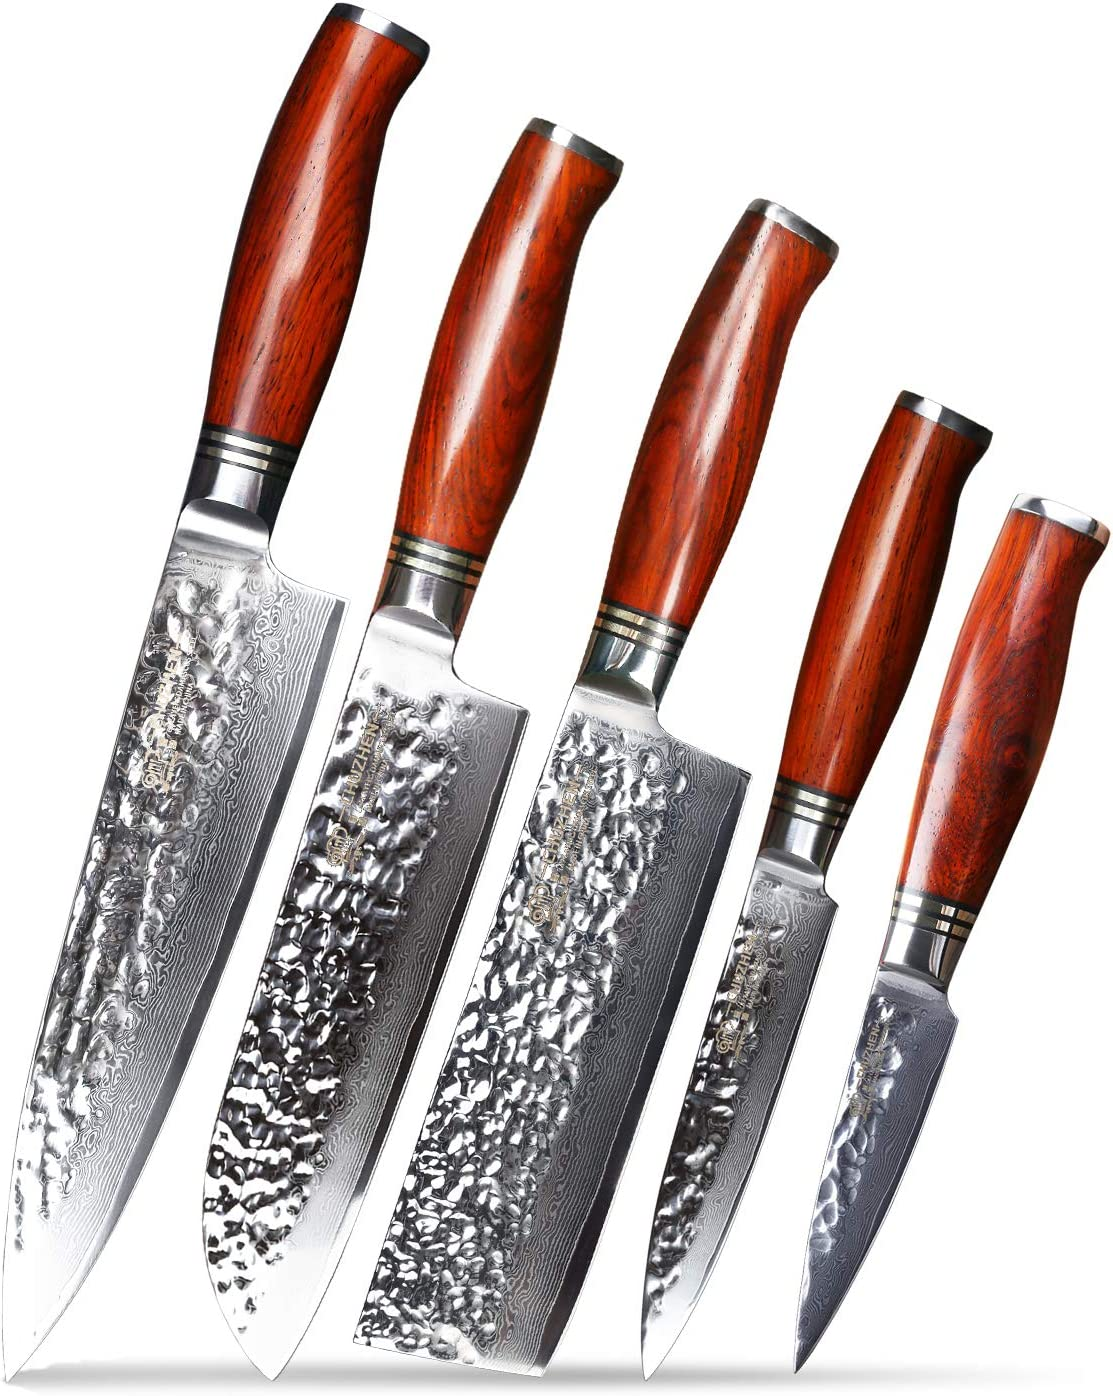 Amazon Com Best Chef Knives Set Knife Kitchen 5 Pieces Chuzhen Yr01 Catena Dalbergia Wood Japan Damascus Steel Vg 10 Core Blade Santoku Utility Knife Paring Nakiri Knives Set Kitchen Dining